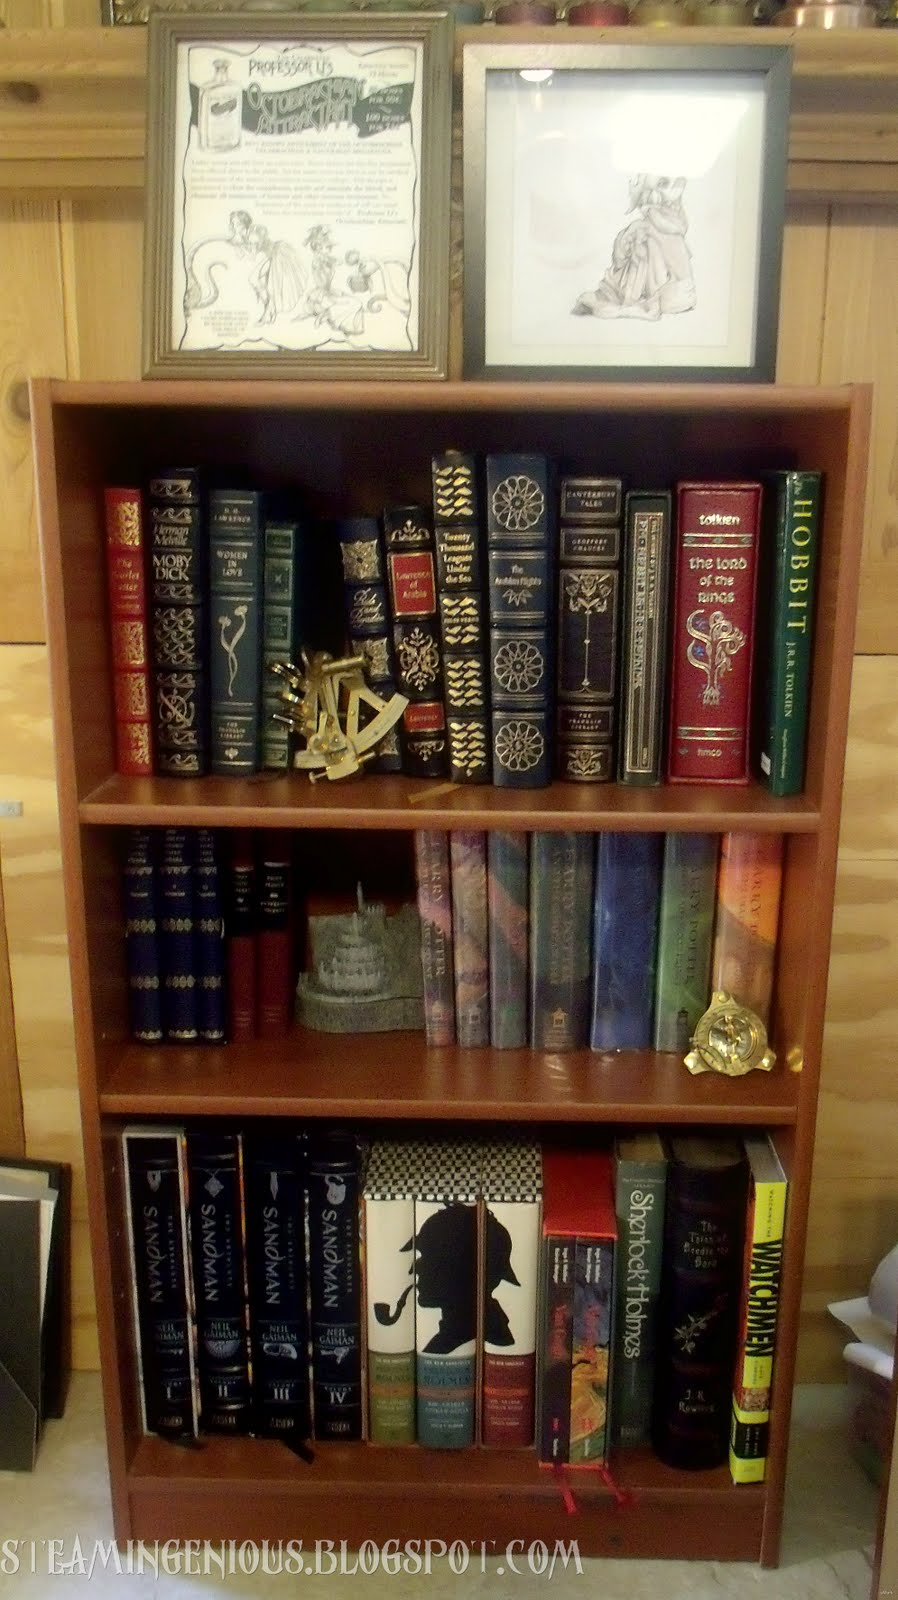 Steam Ingenious: Some Quick Steampunk Home Decor Projects